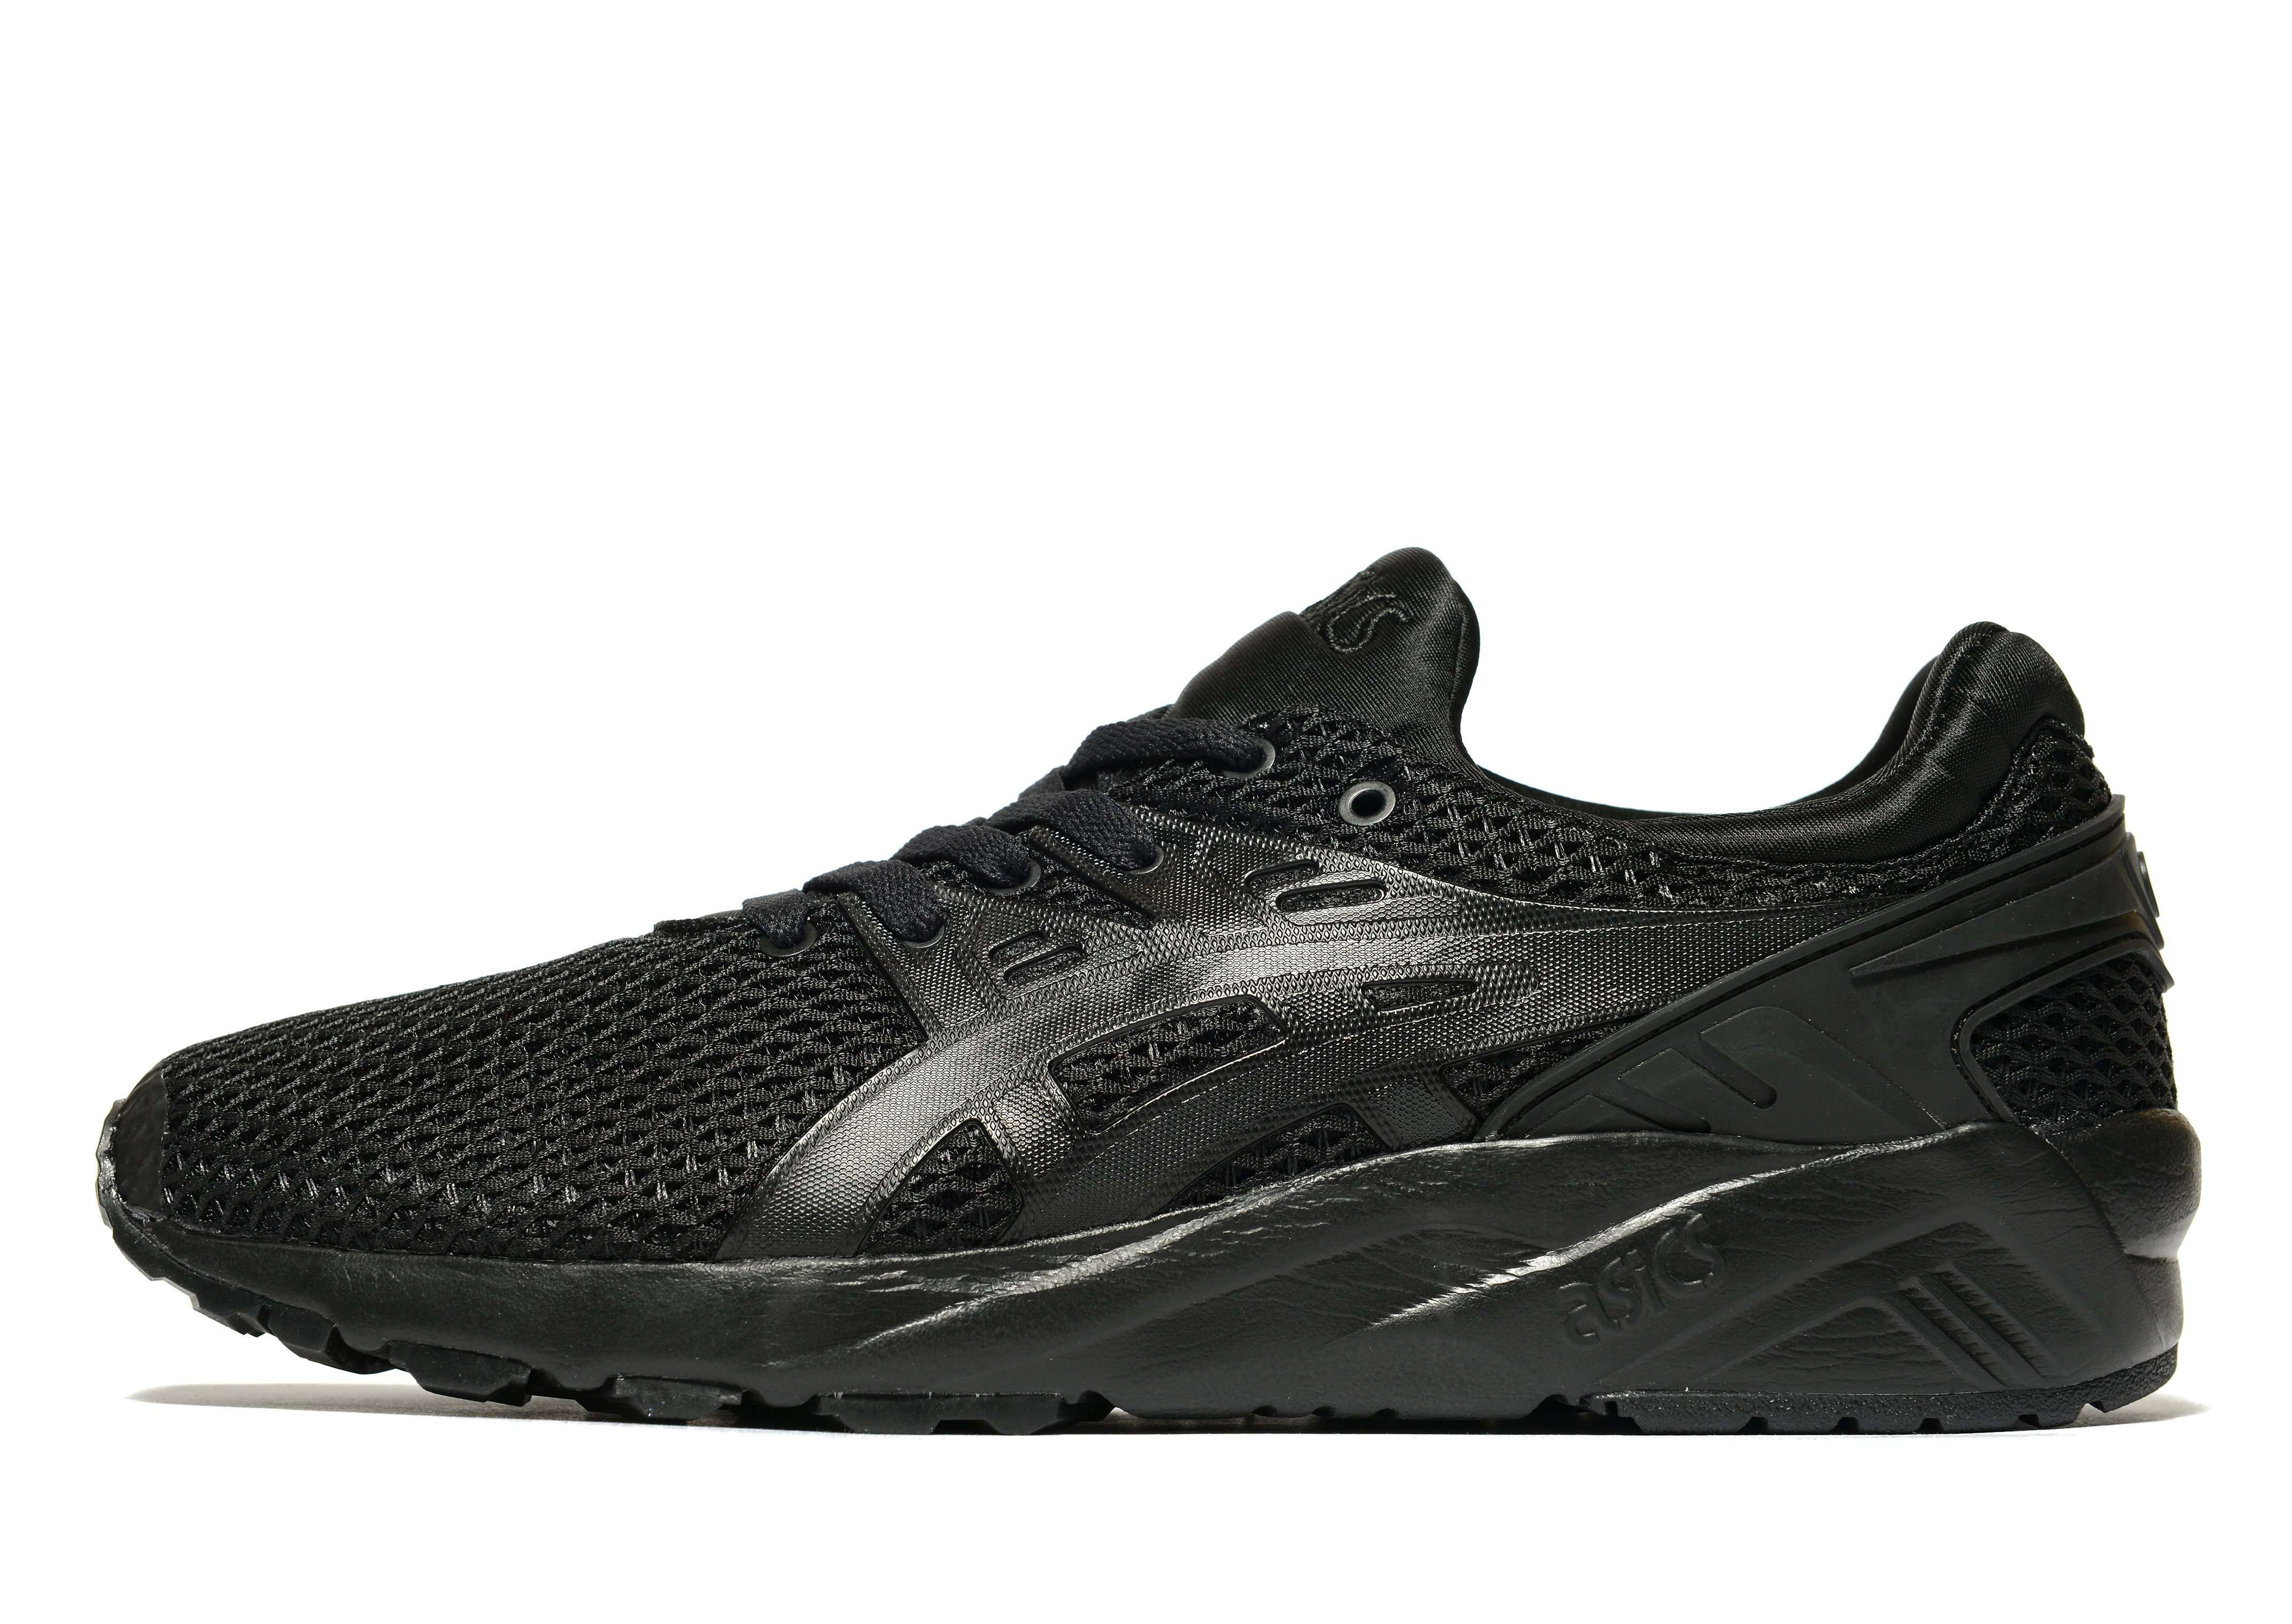 4cd2ee32ea5f ASICS GEL-Kayano Evo - Shop online for ASICS GEL-Kayano Evo with JD ...